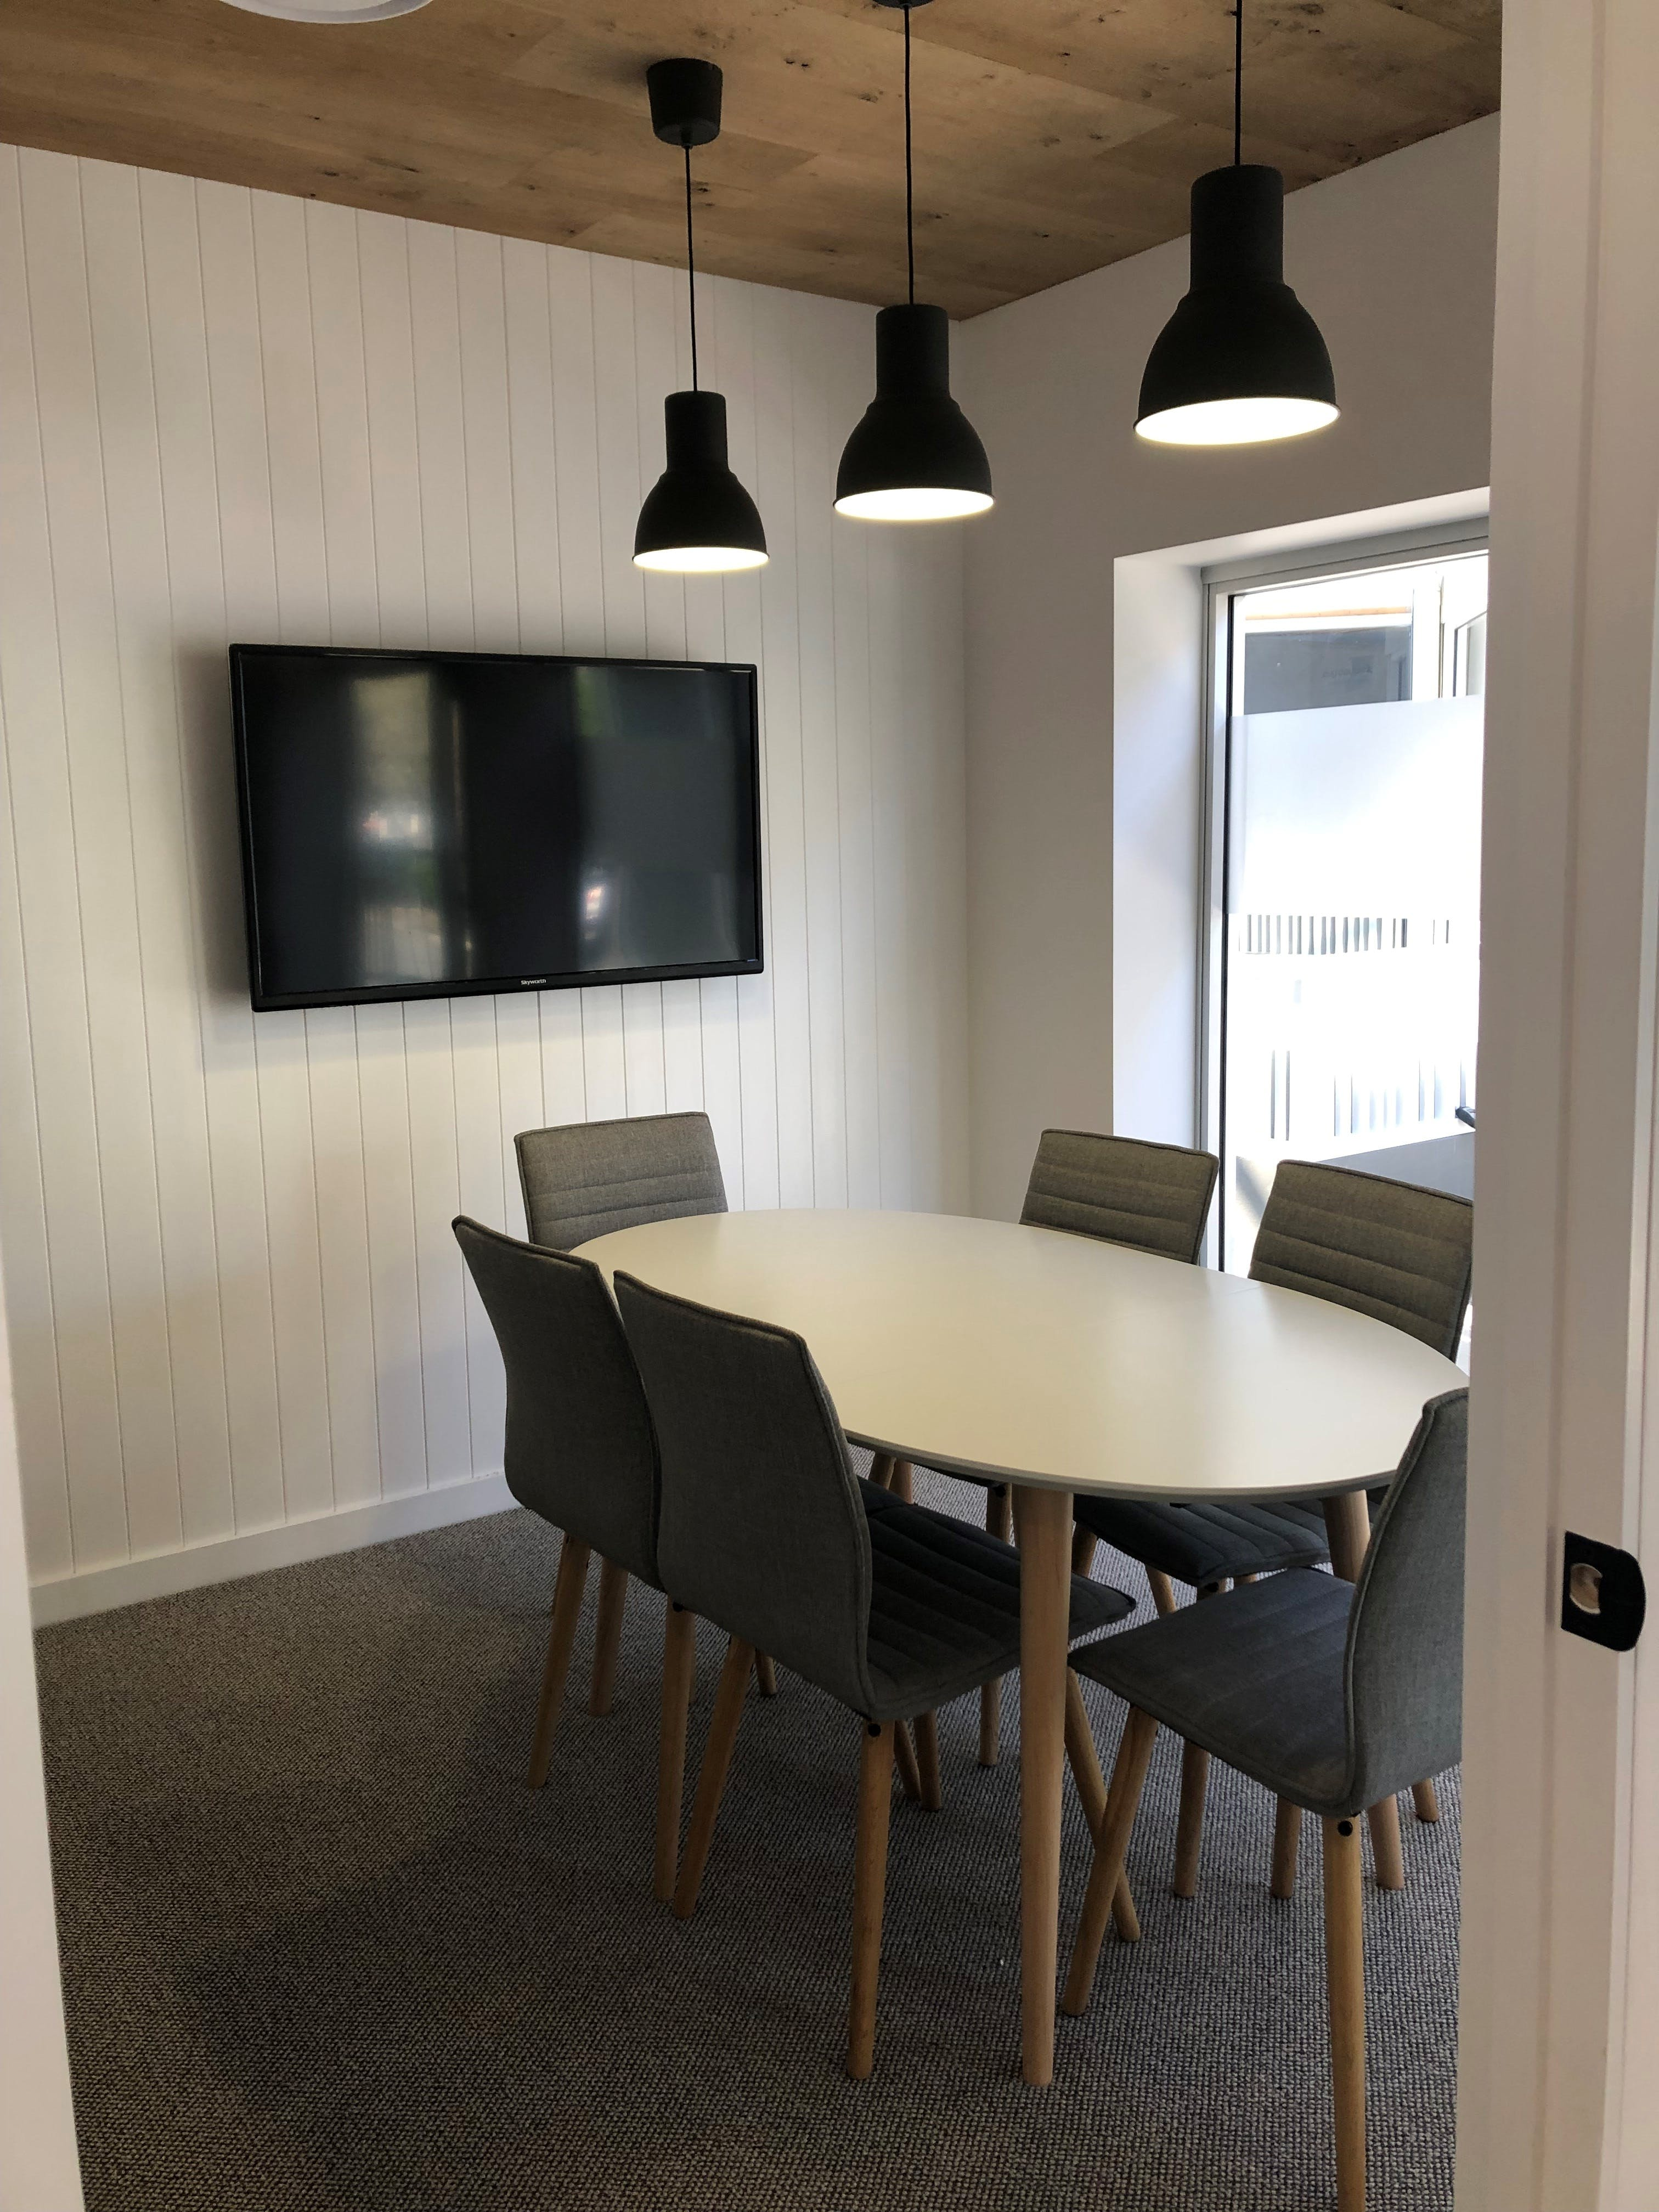 Meeting room at Industryus HR, image 1